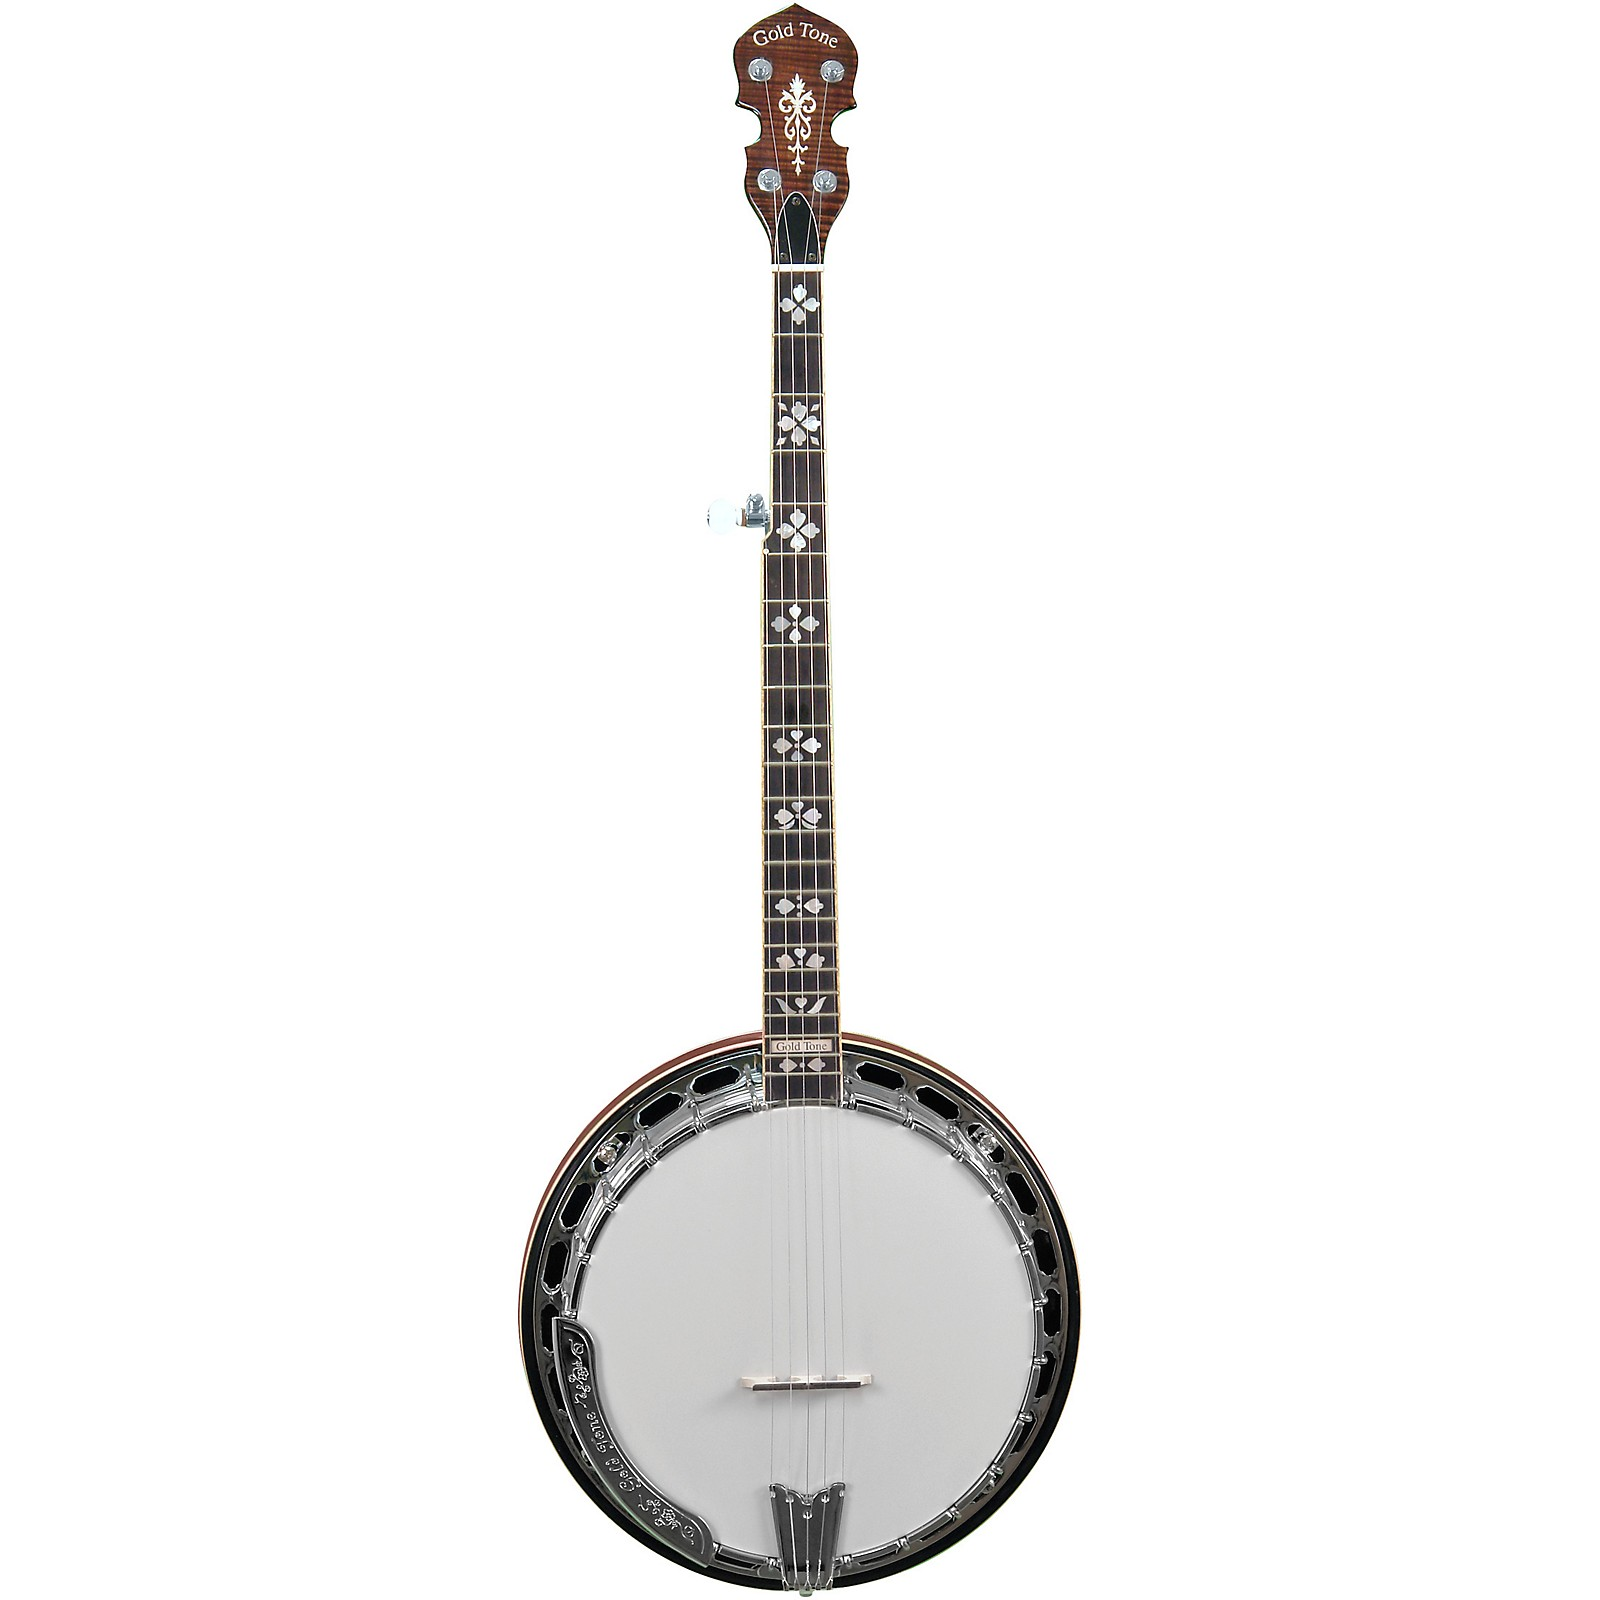 Gold Tone OB-250 Resonator Banjo